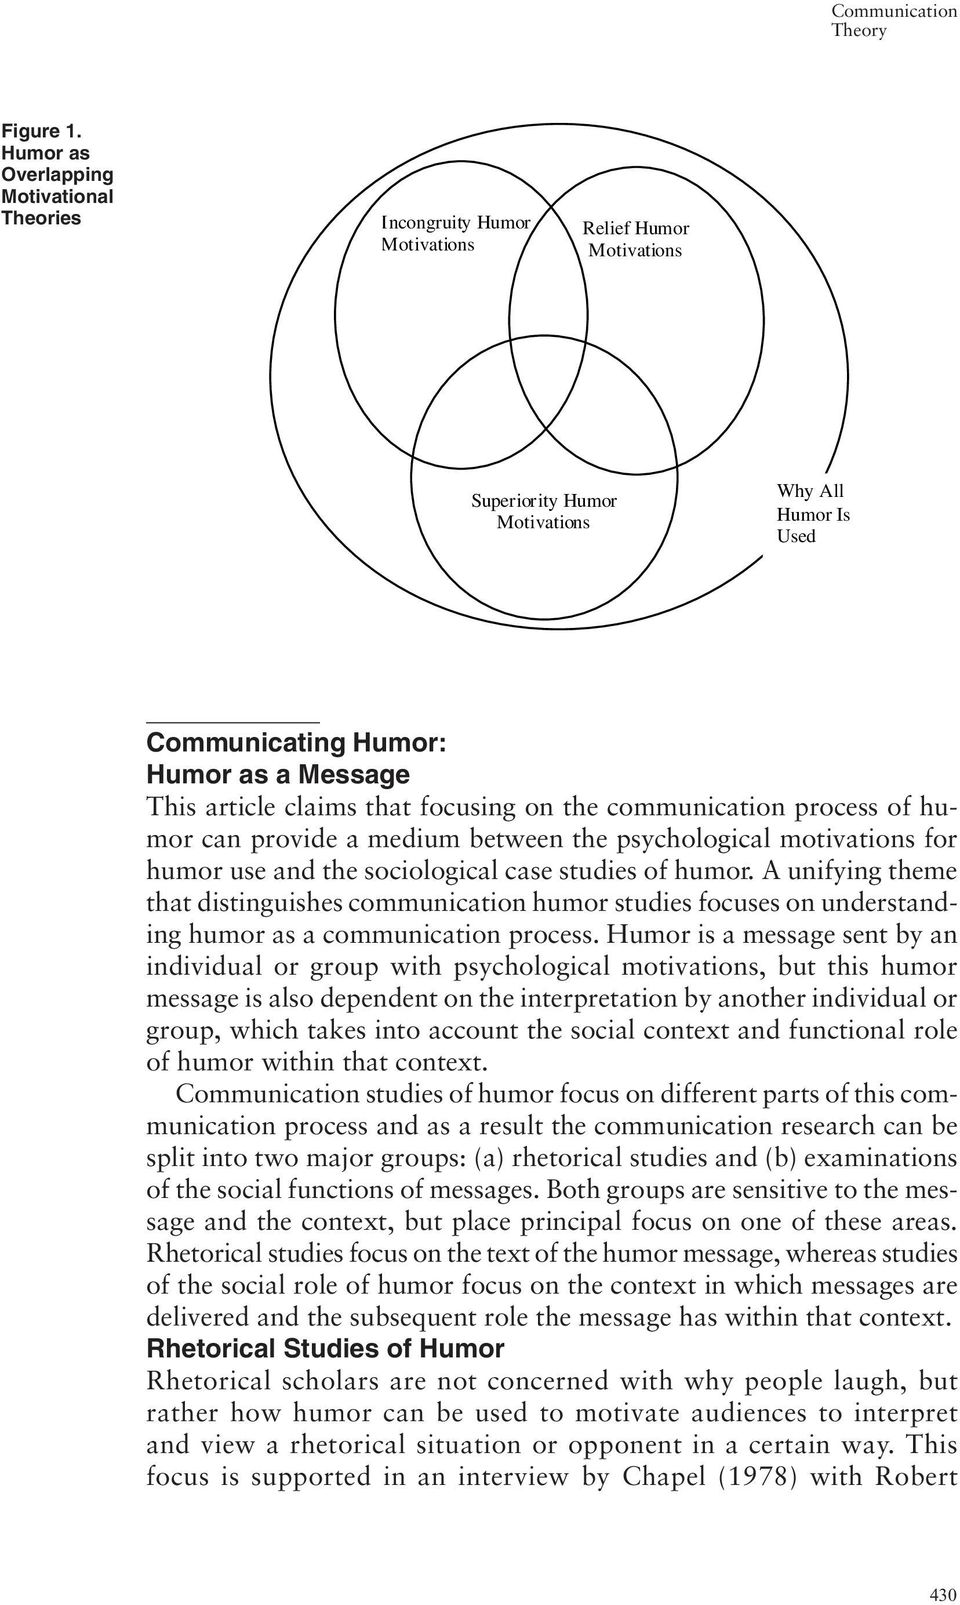 article claims that focusing on the communication process of humor can provide a medium between the psychological motivations for humor use and the sociological case studies of humor.